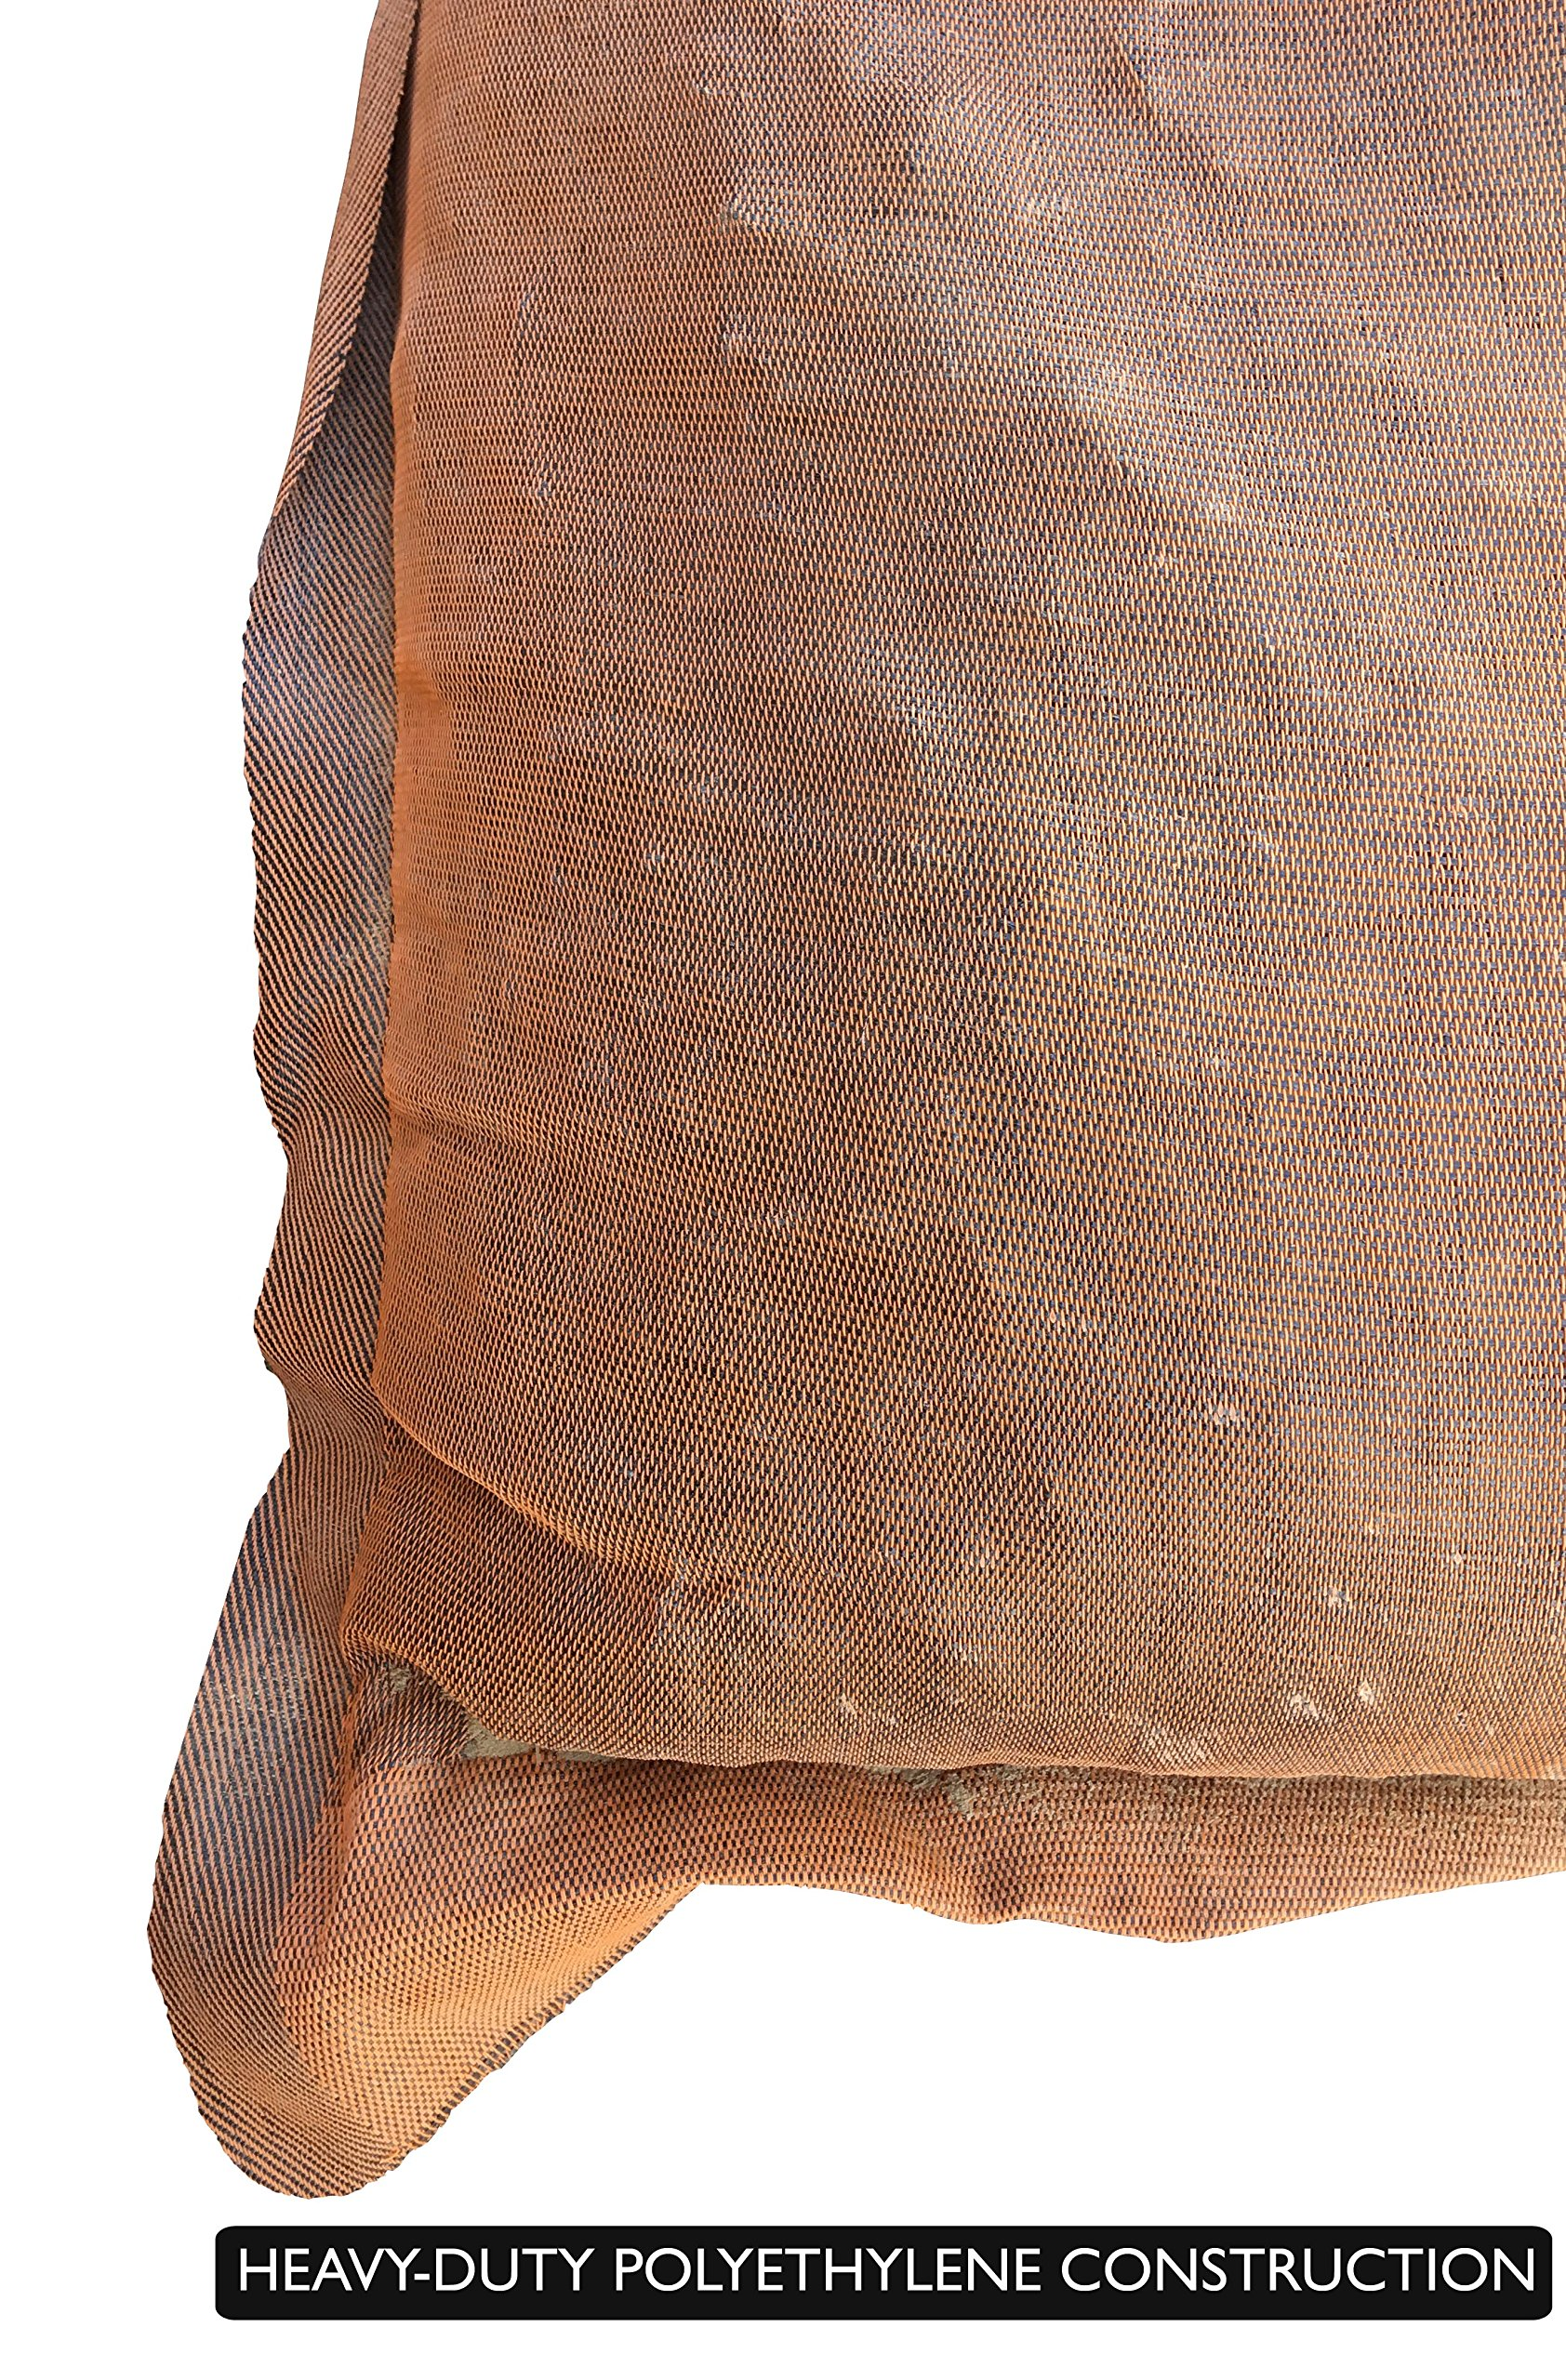 Sandbaggy - 17'' x 27'' Long-Lasting Sandbags - Brown Color - Lasts 1-2 Yrs - Monofilament (Pack of 100) by Sandbaggy (Image #5)